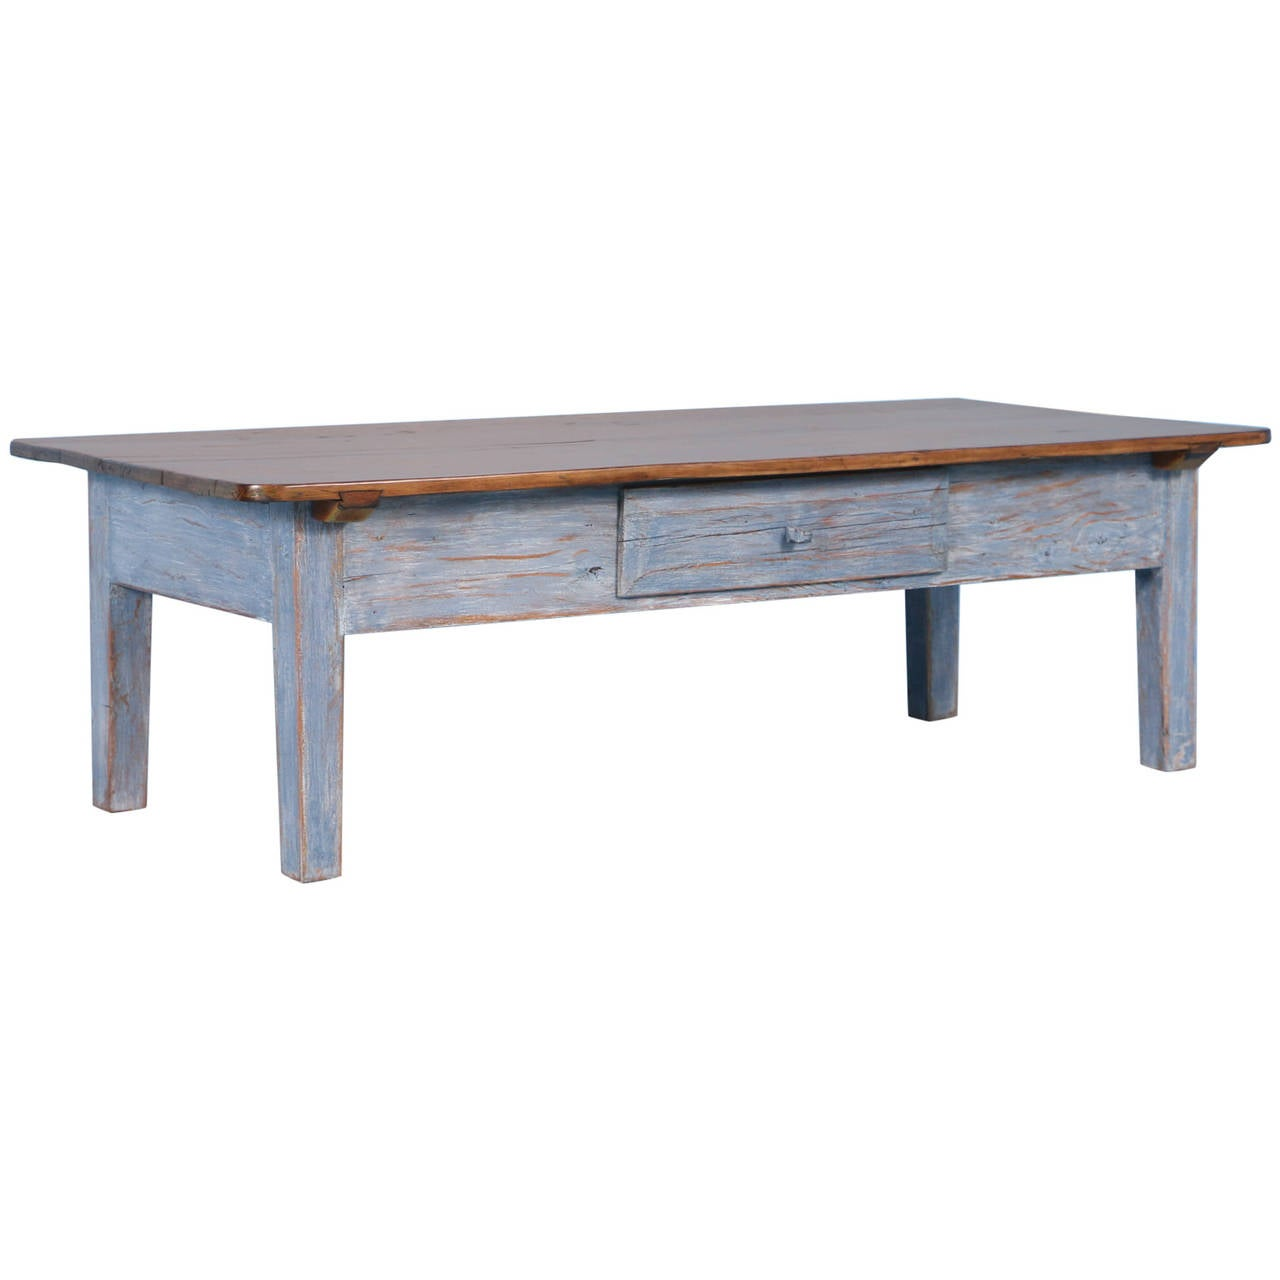 Antique Pine Coffee Tables: Antique Blue Swedish Pine Coffee Table, Circa 1860-1880 At